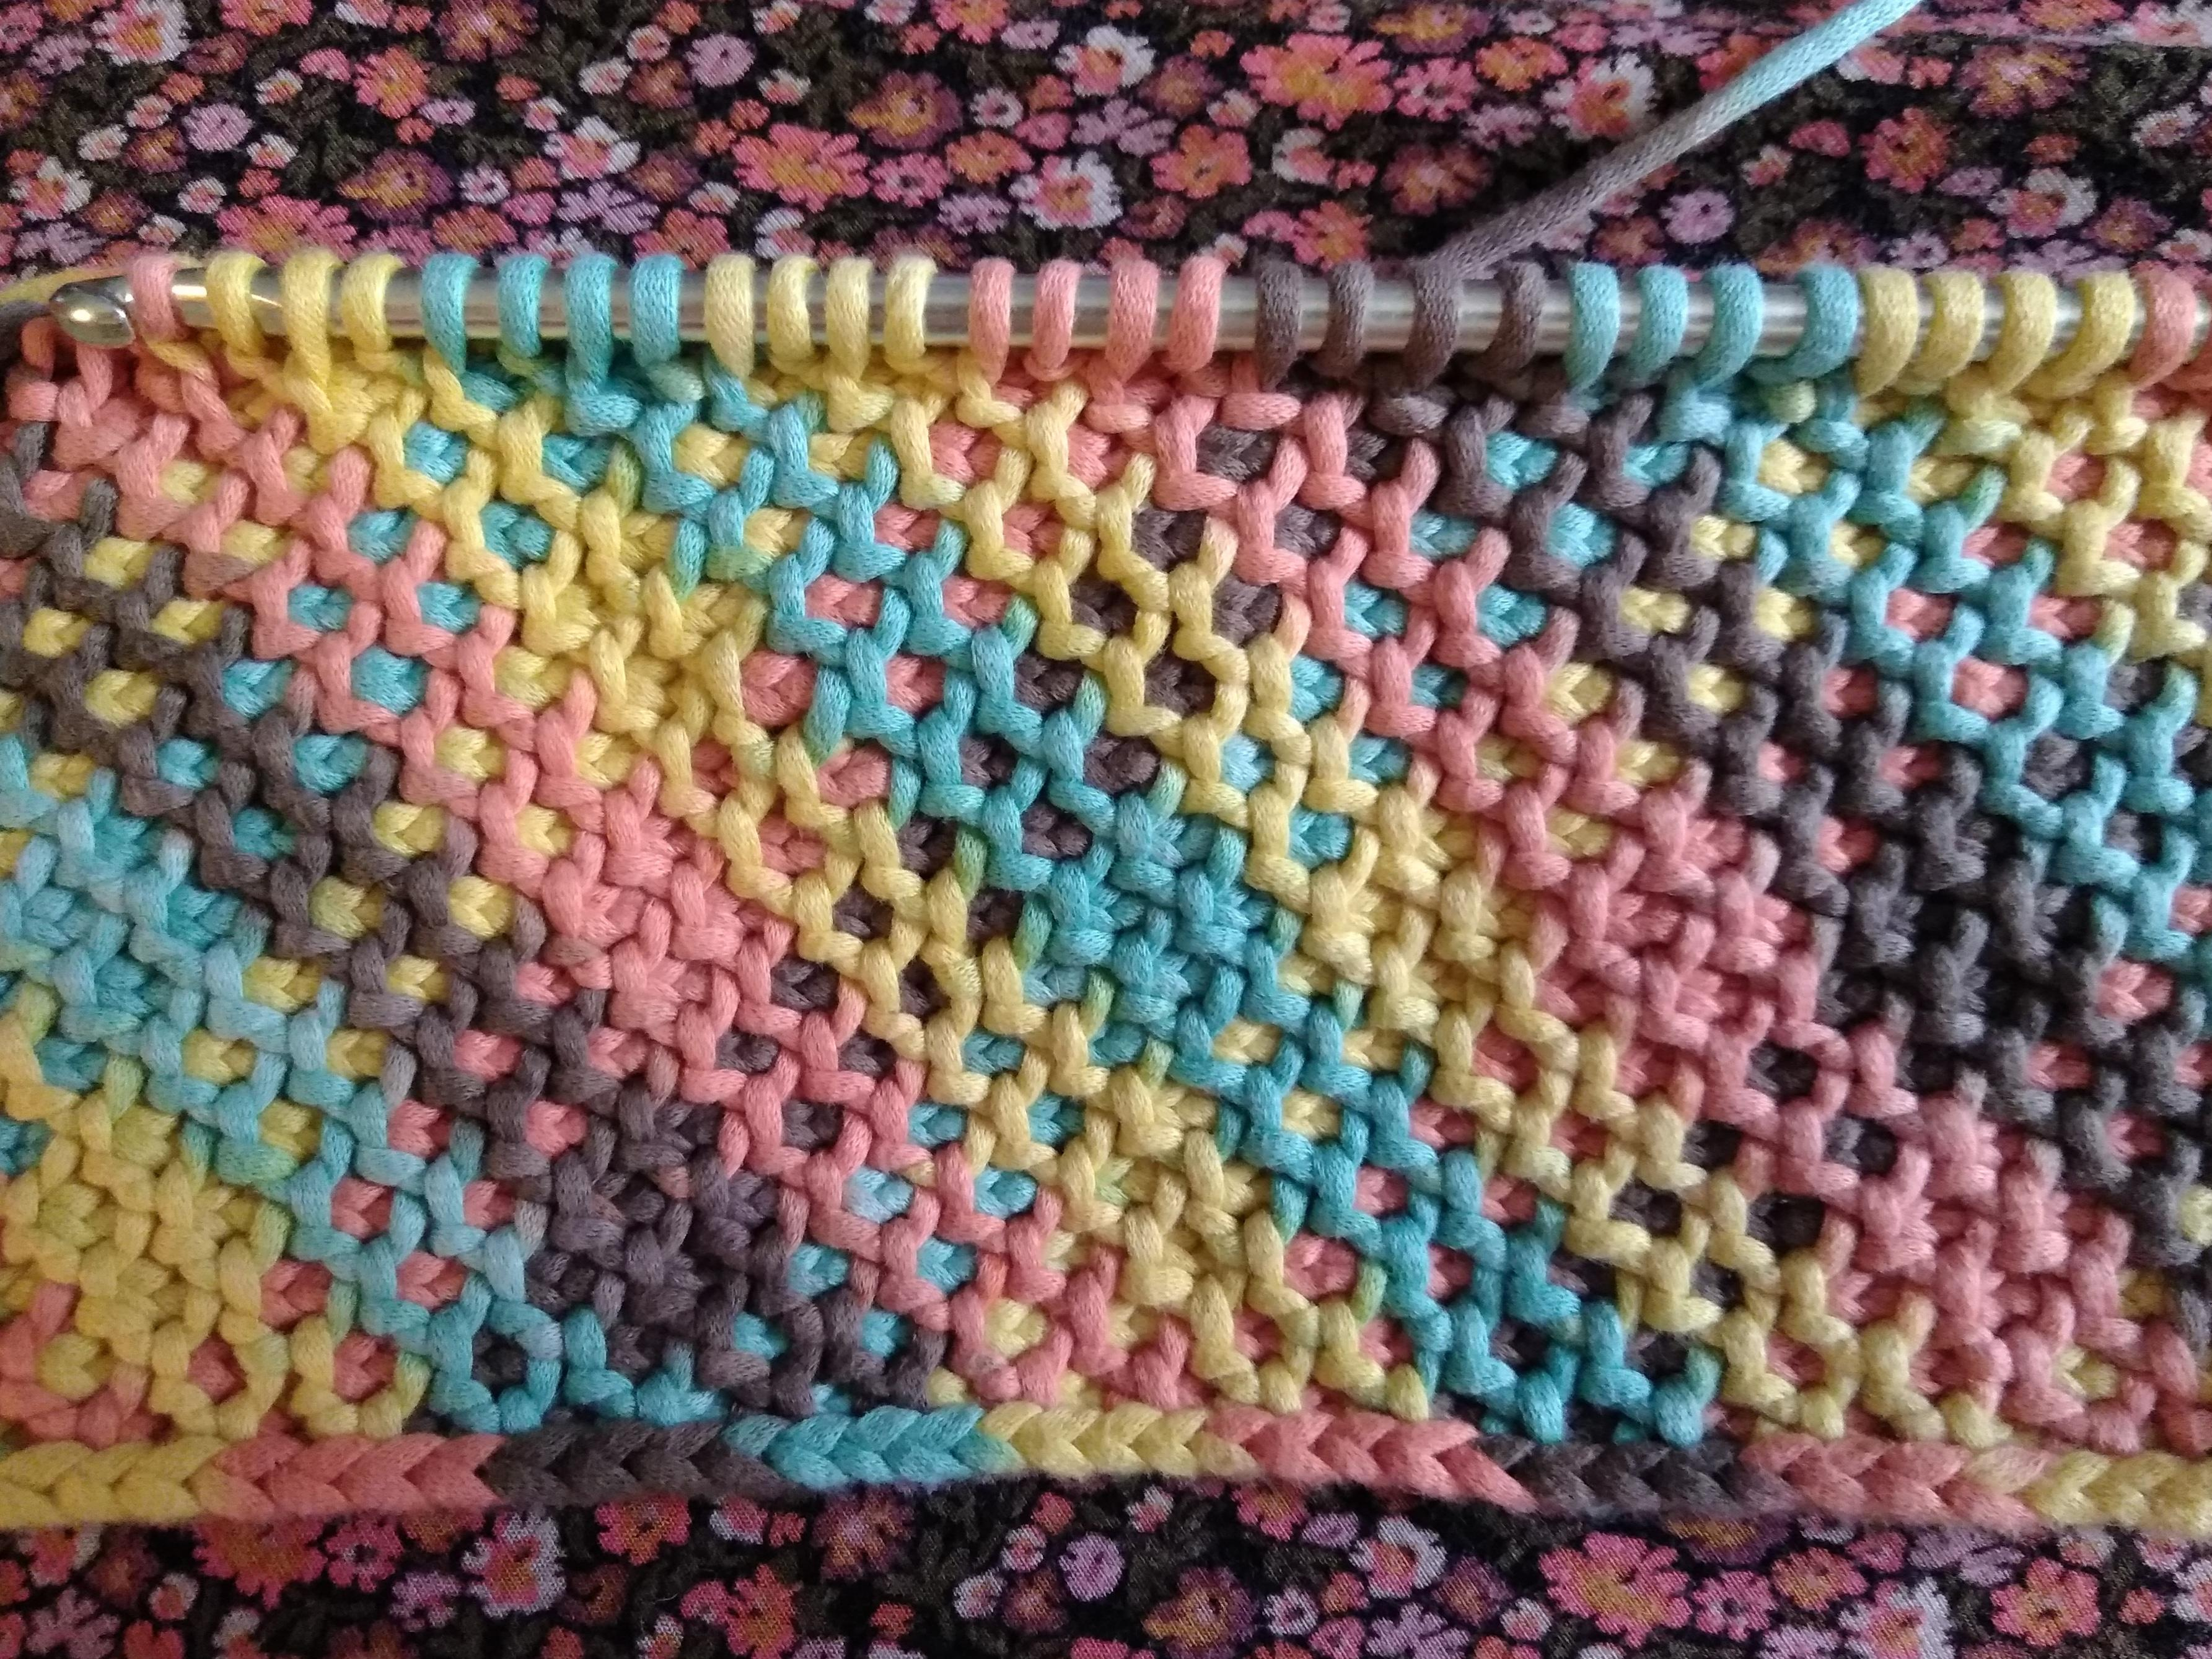 Crochet Pooling Free Pattern A Few Weeks Ago I Asked Here For Planned Pooling Tips A Week After